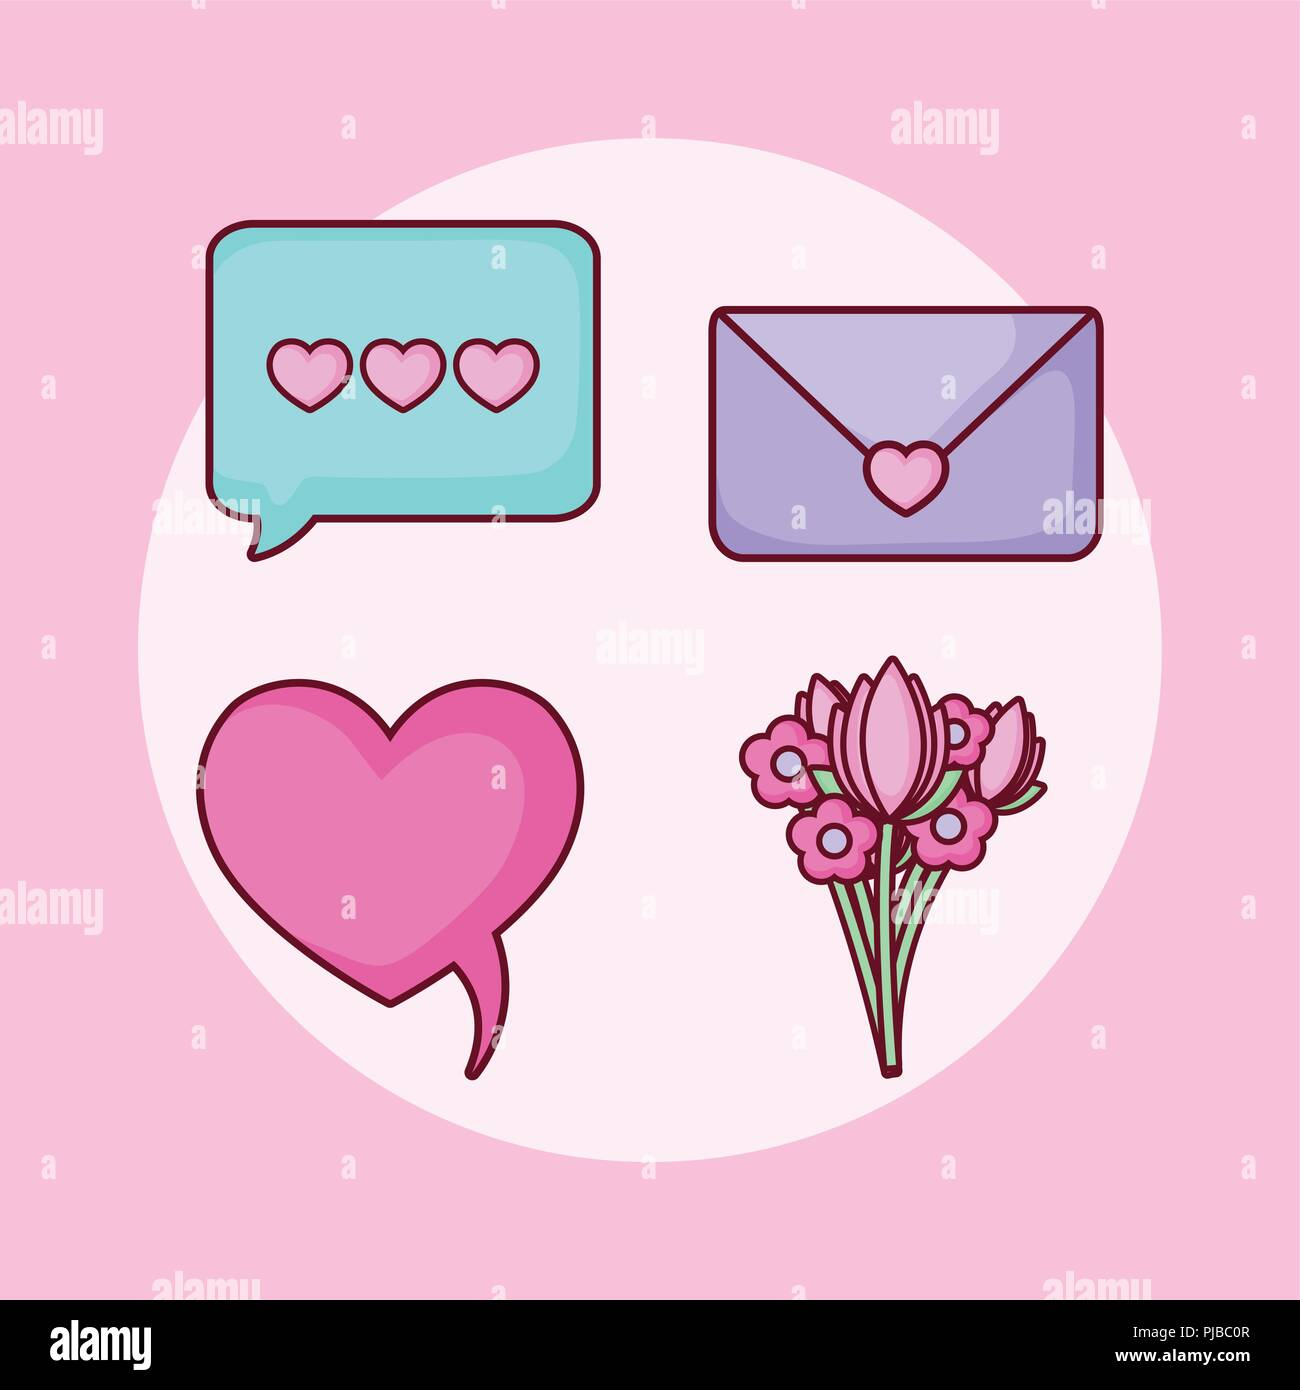 email online dating